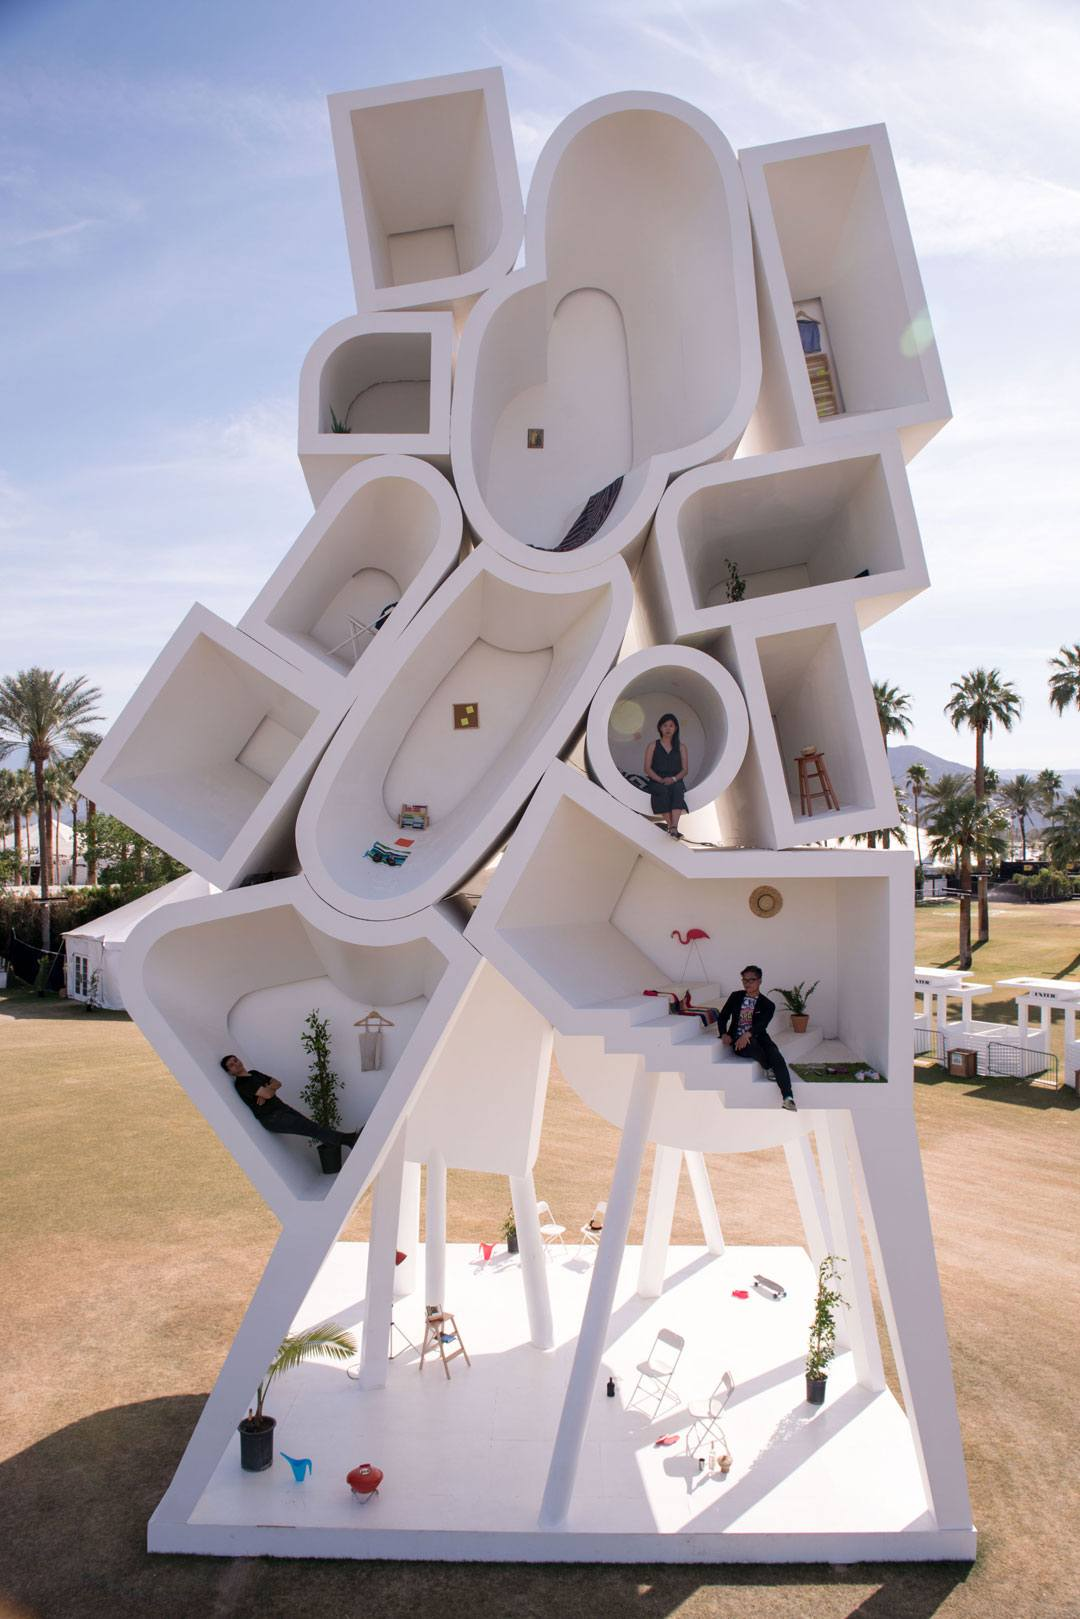 Tower of Twelve Stories by Bureau Spectacular in the Coachella Valley.